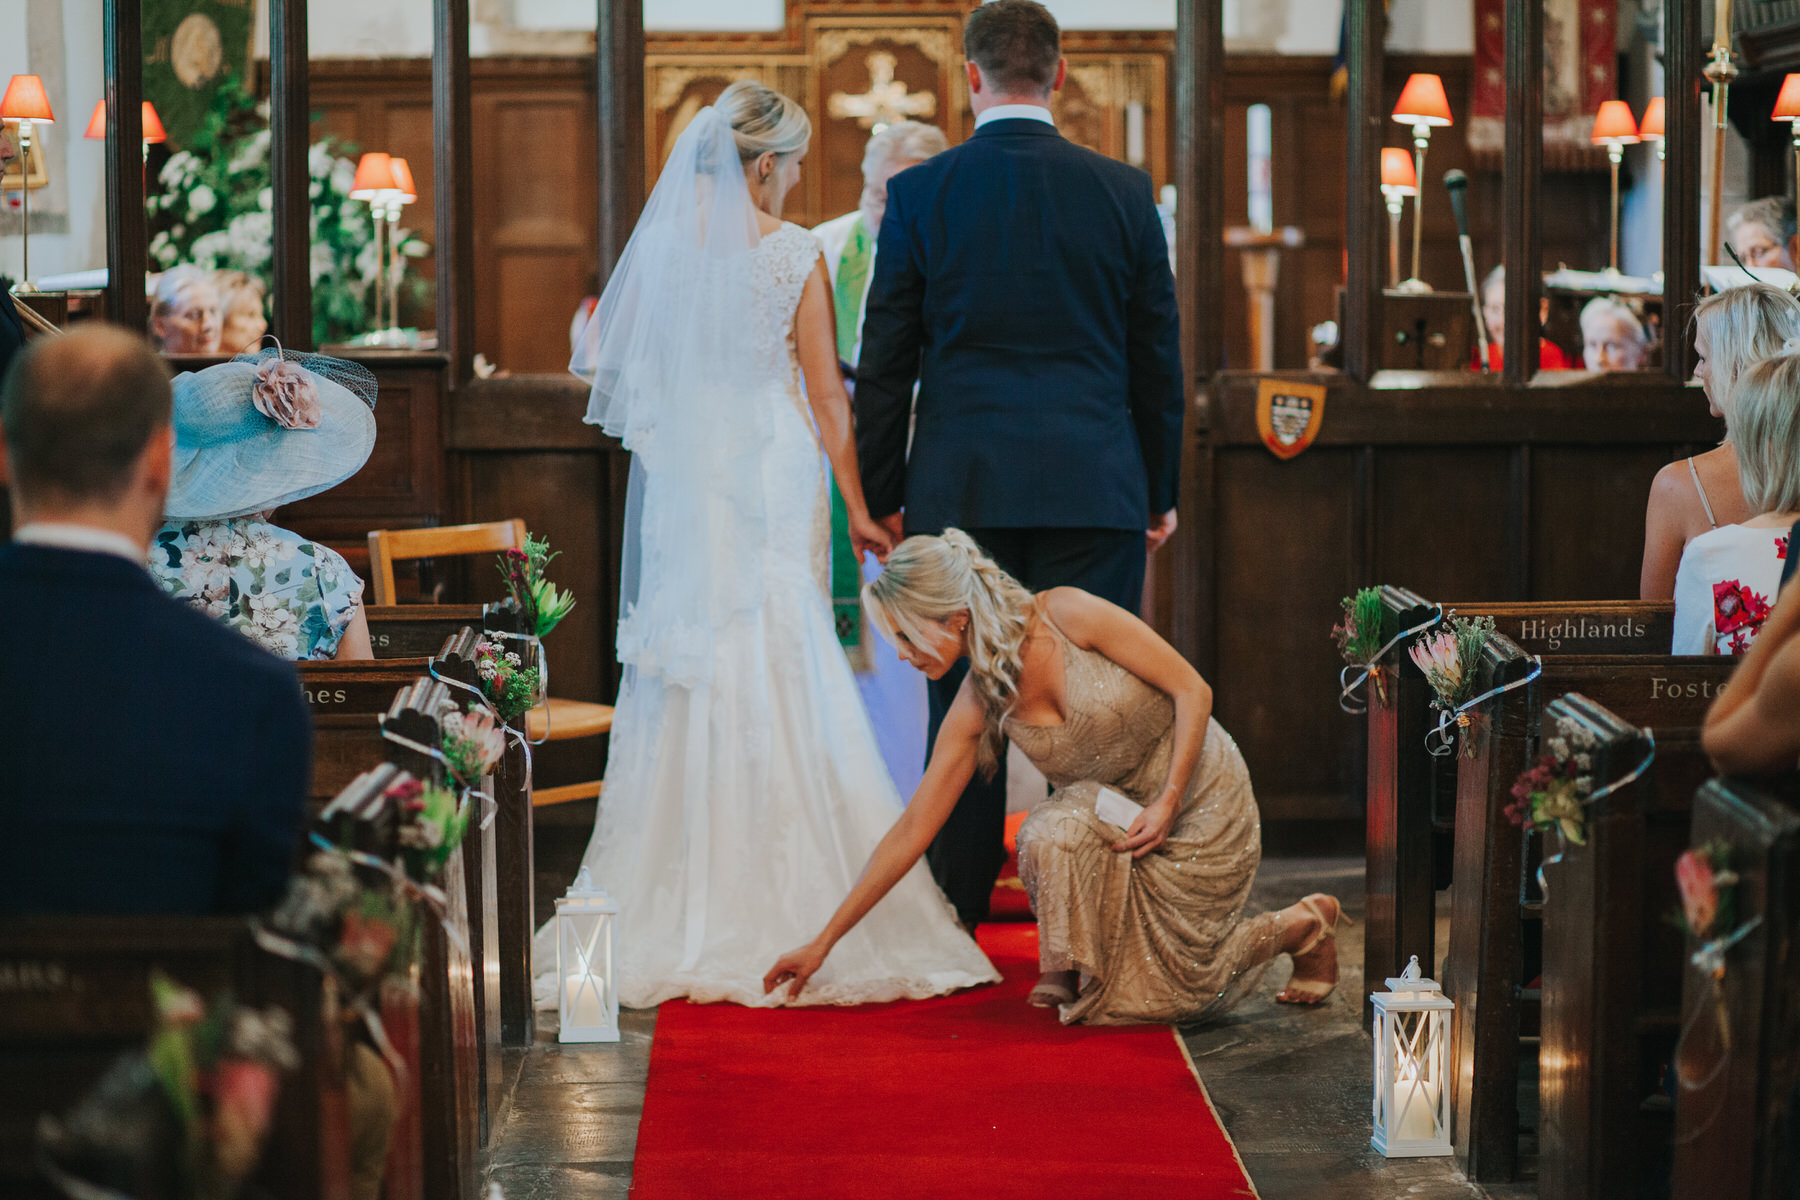 95 bridesmaid fixing brides train church wedding.jpg